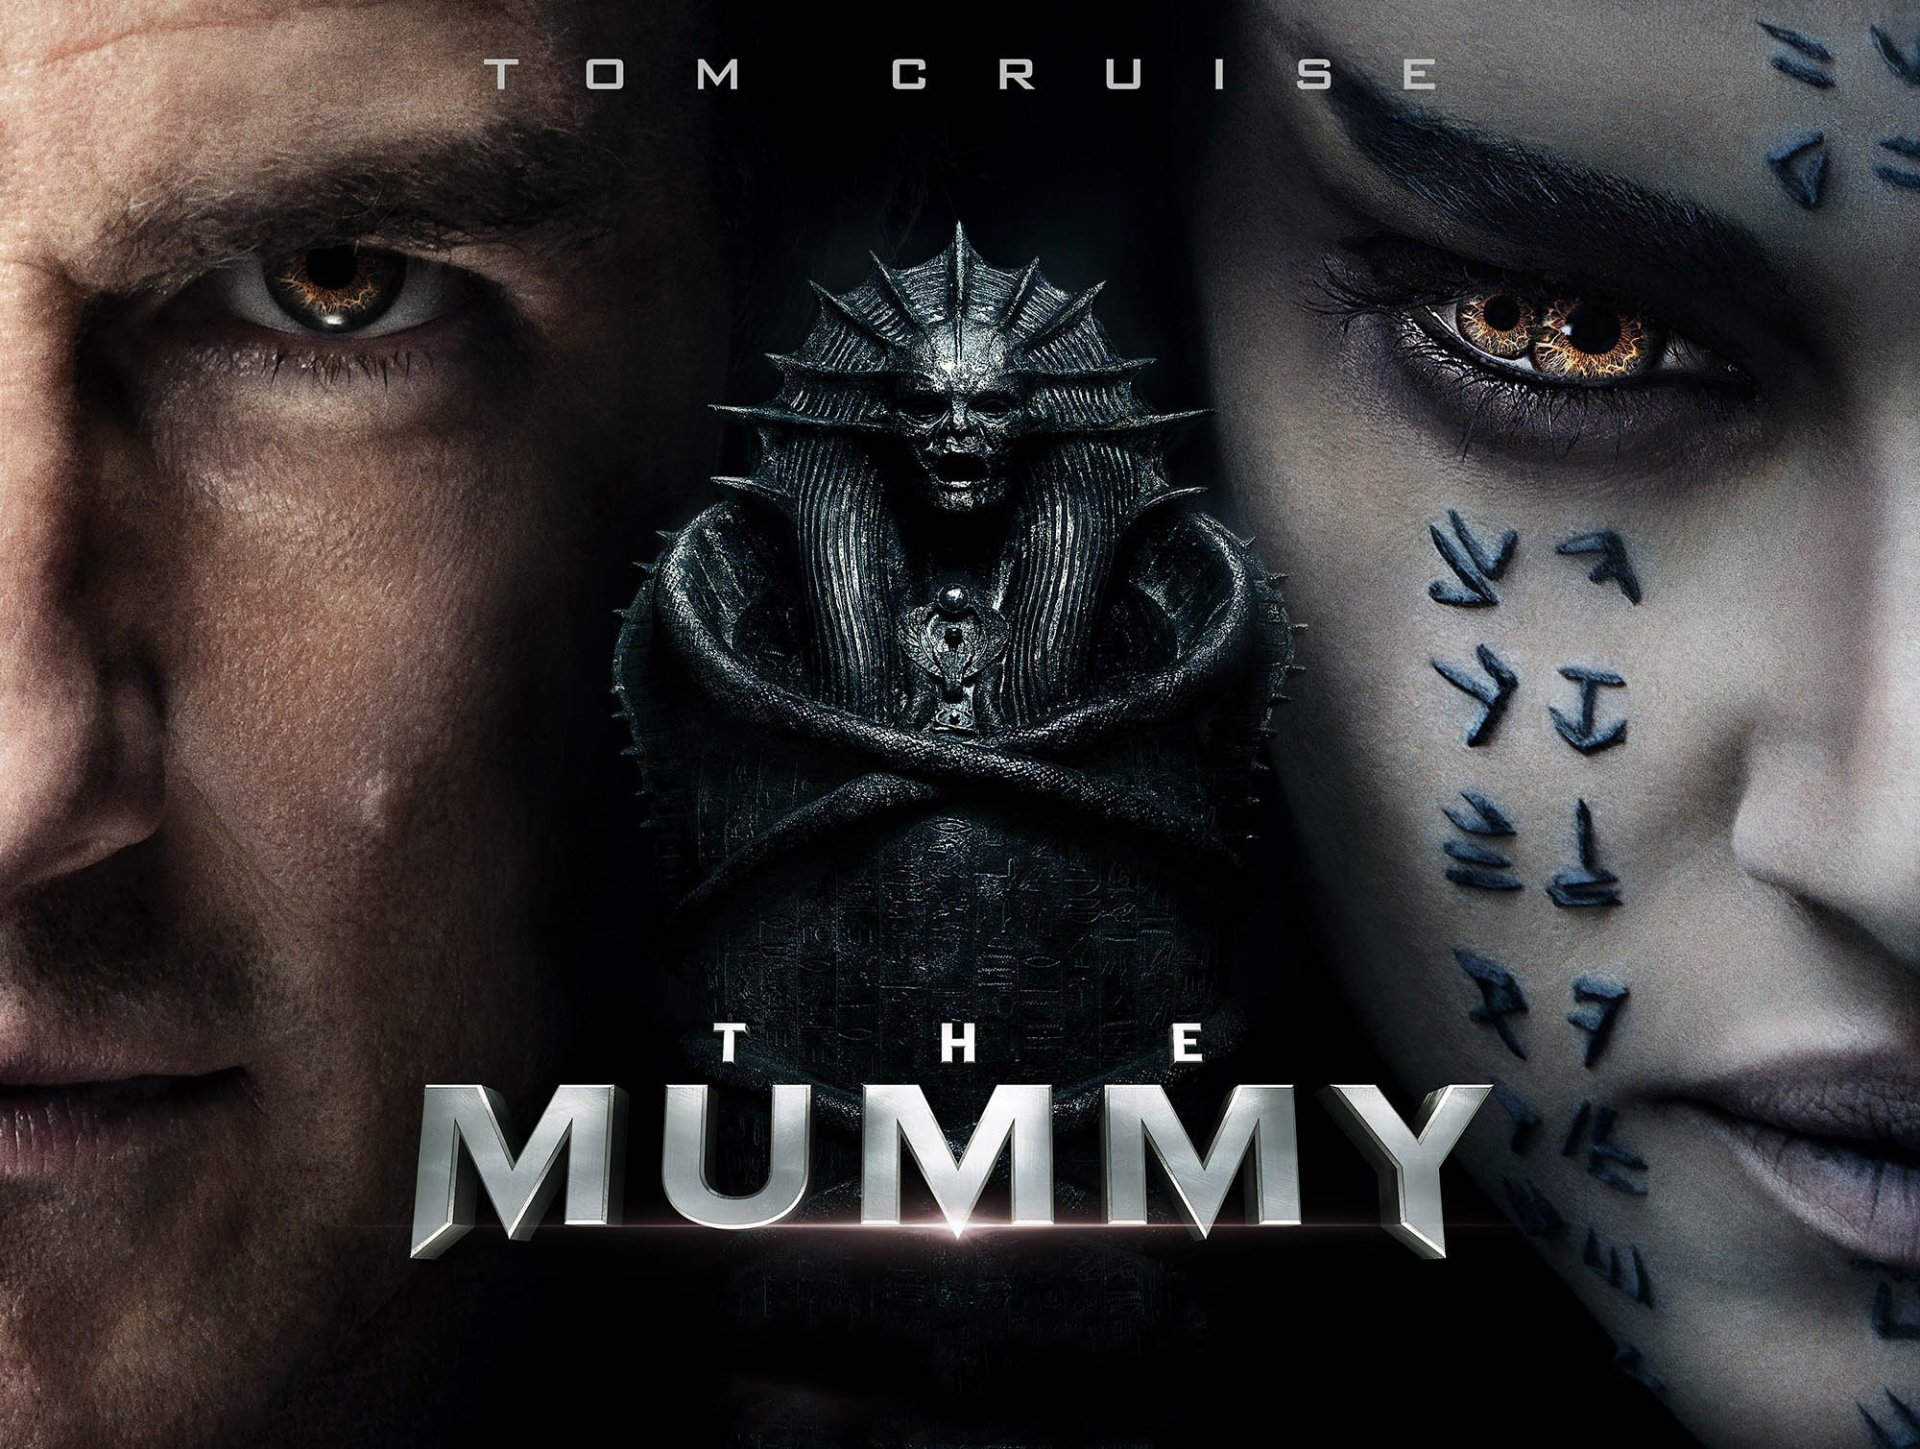 Fondos La Momia 2017 Wallpapers The Mummy